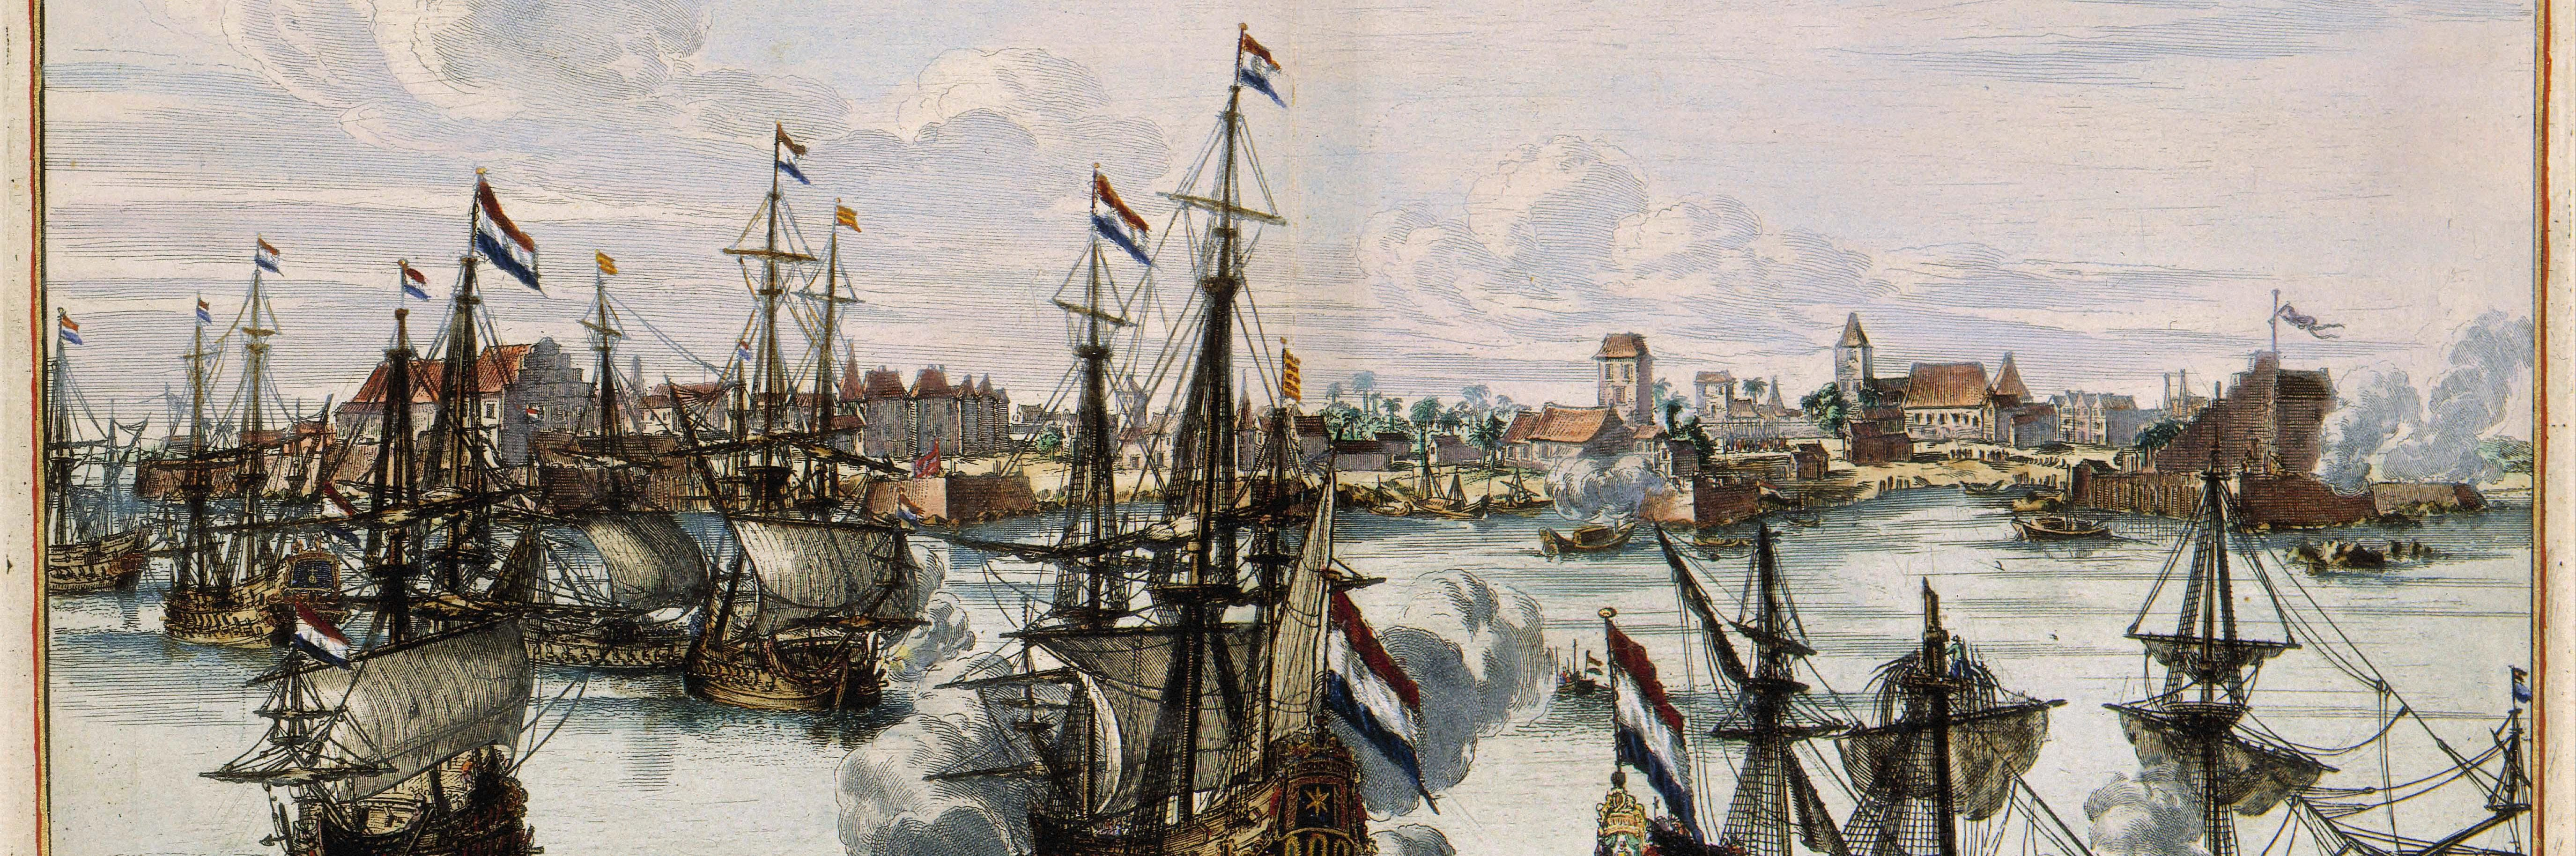 Agents with Principles: The Control of Labor in the Dutch East India Company, 1700 to 1796